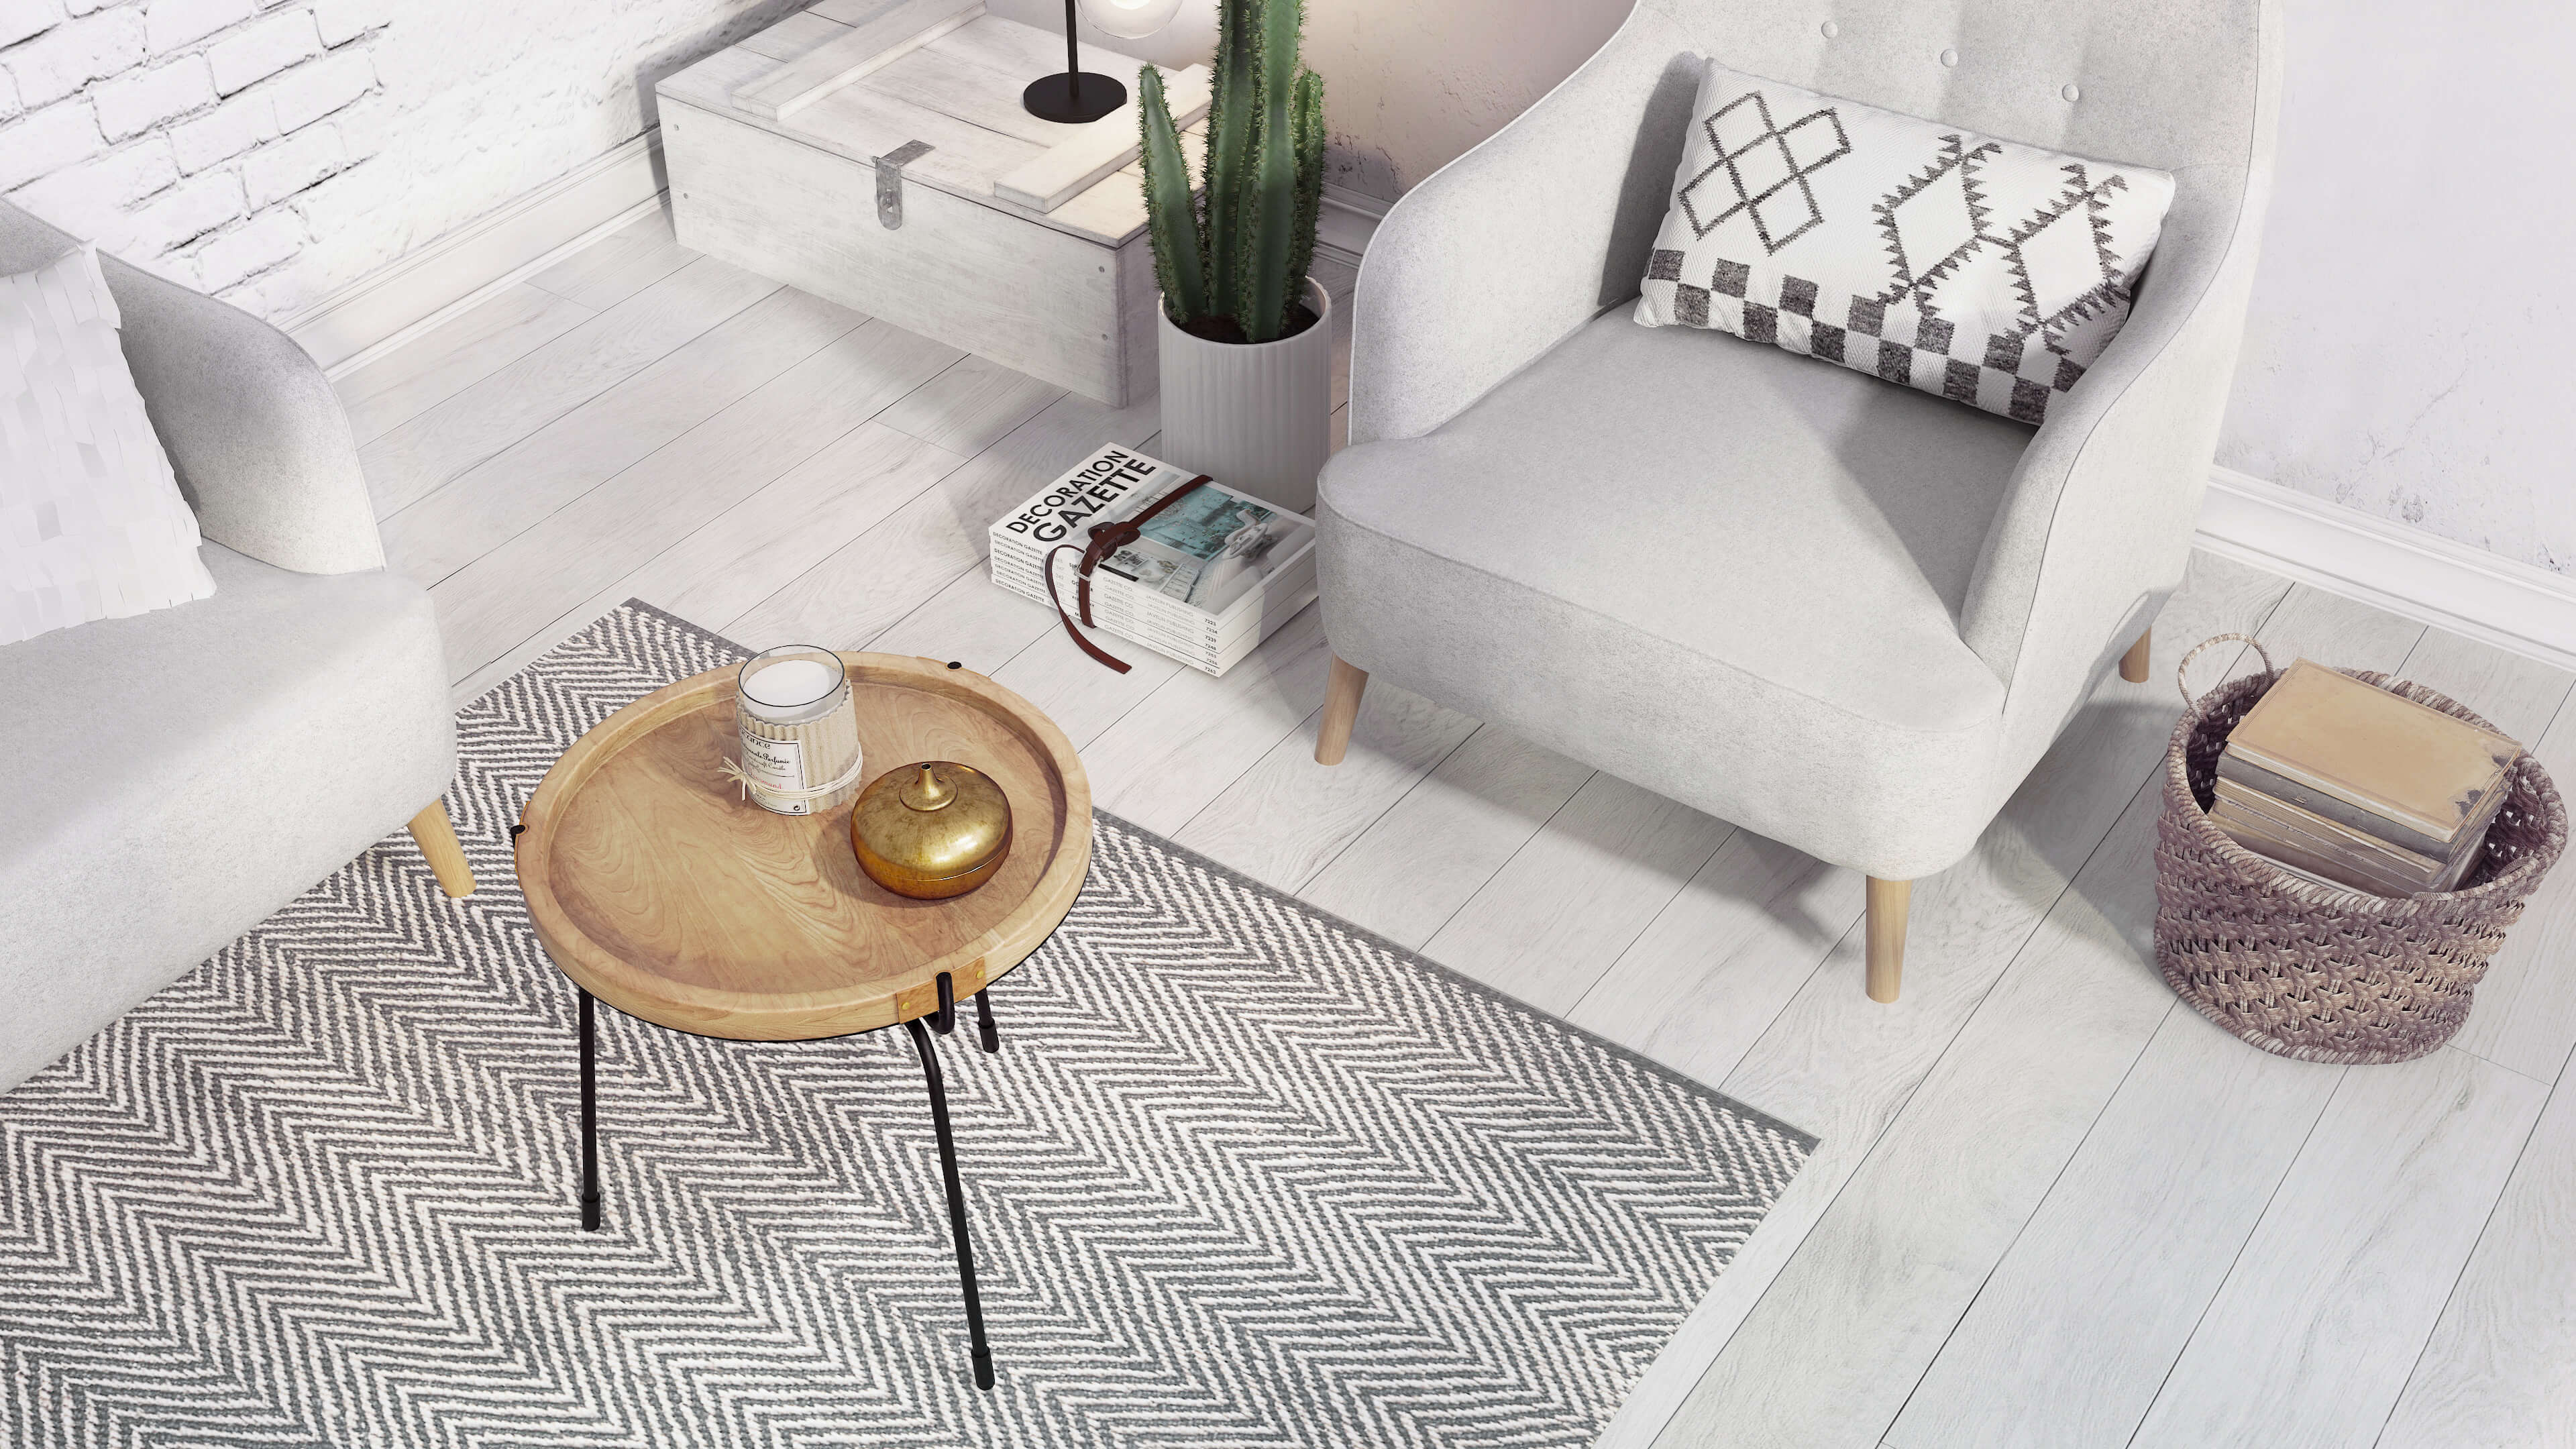 furniture-renderings-5